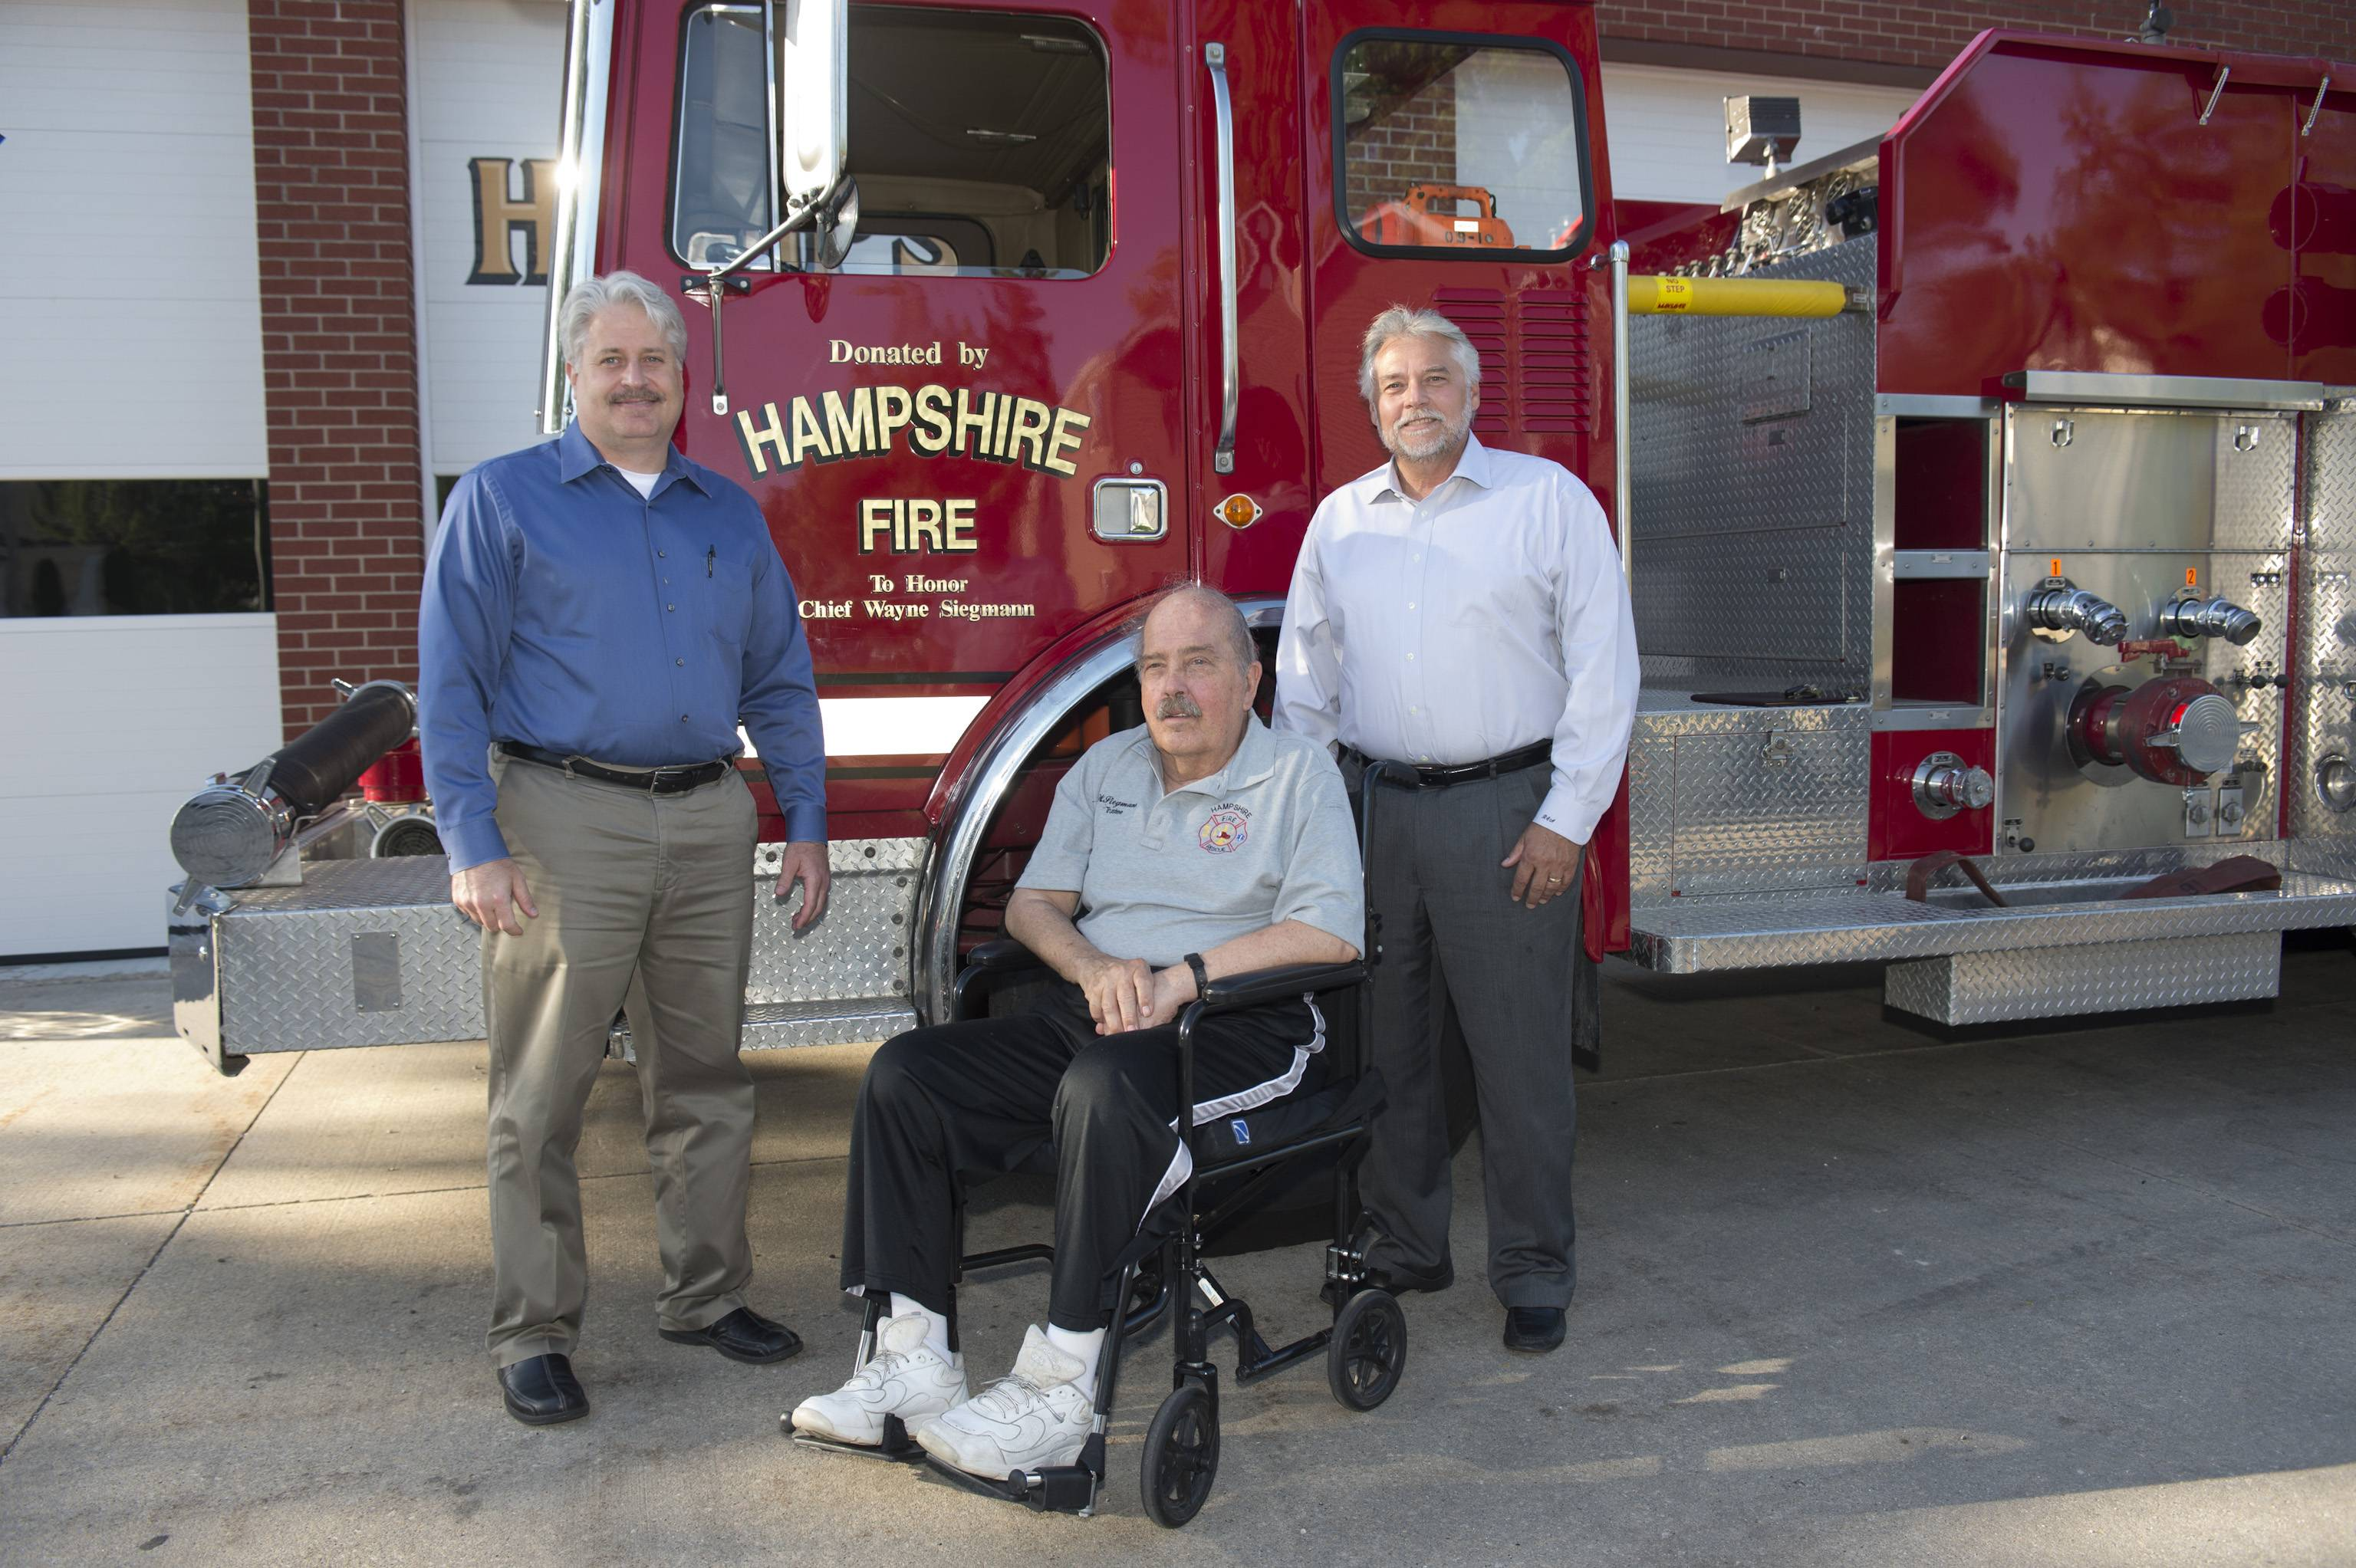 Elgin Community College recently received a donated fire truck. Pictured, from left, are Carl DeCarlo, ECC unit adjunct faculty and instructional coordinator for fire science and safety, retired Hampshire Fire Protection District Chief Wayne Siegmann, and Scott Adams, ECC associate dean of sustainability, safety and career tech.